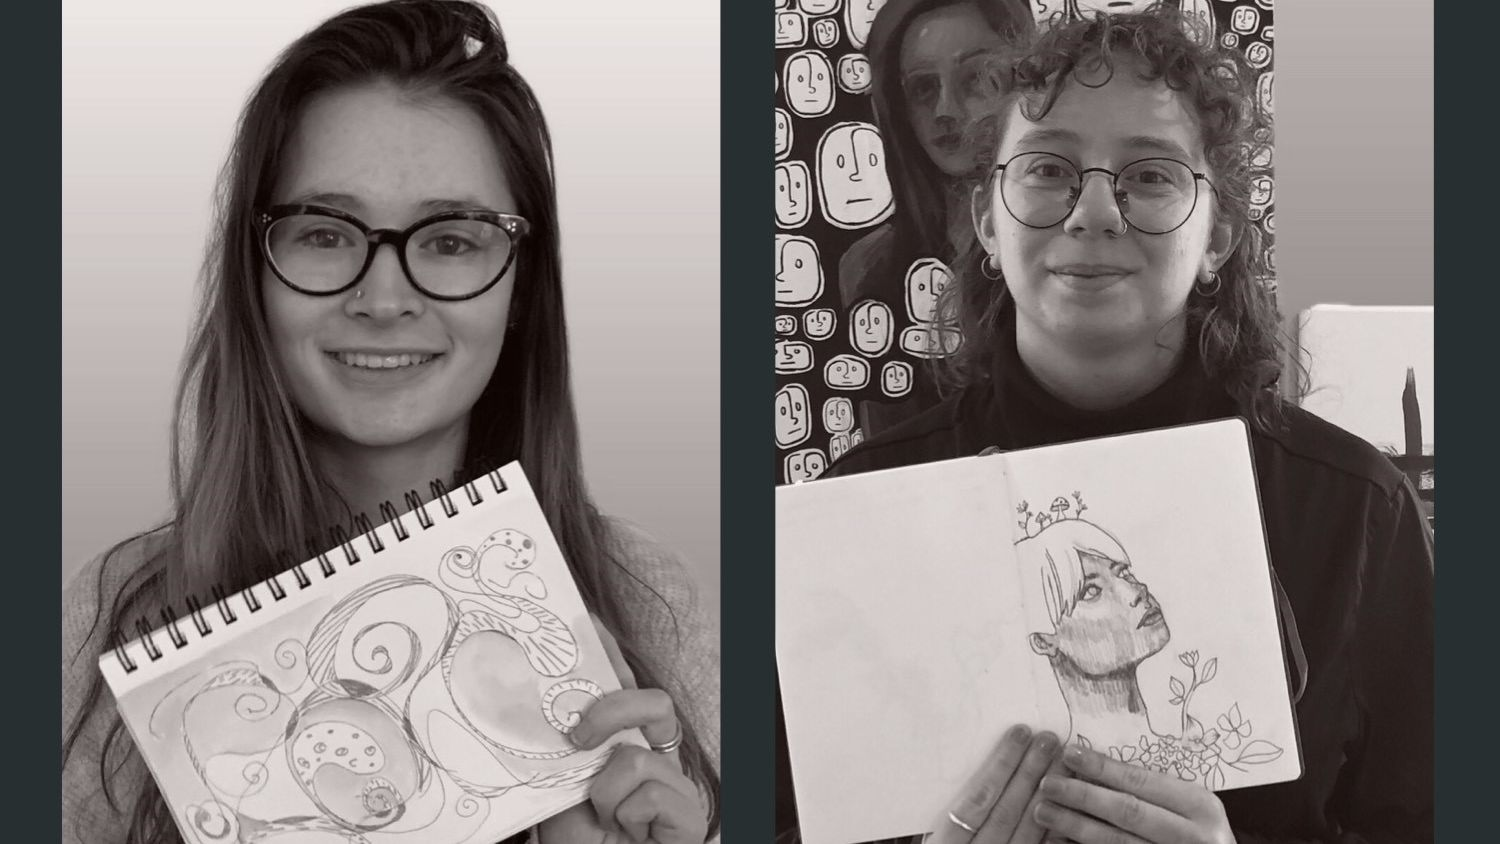 Temple University and Drexel University students show off their art work.